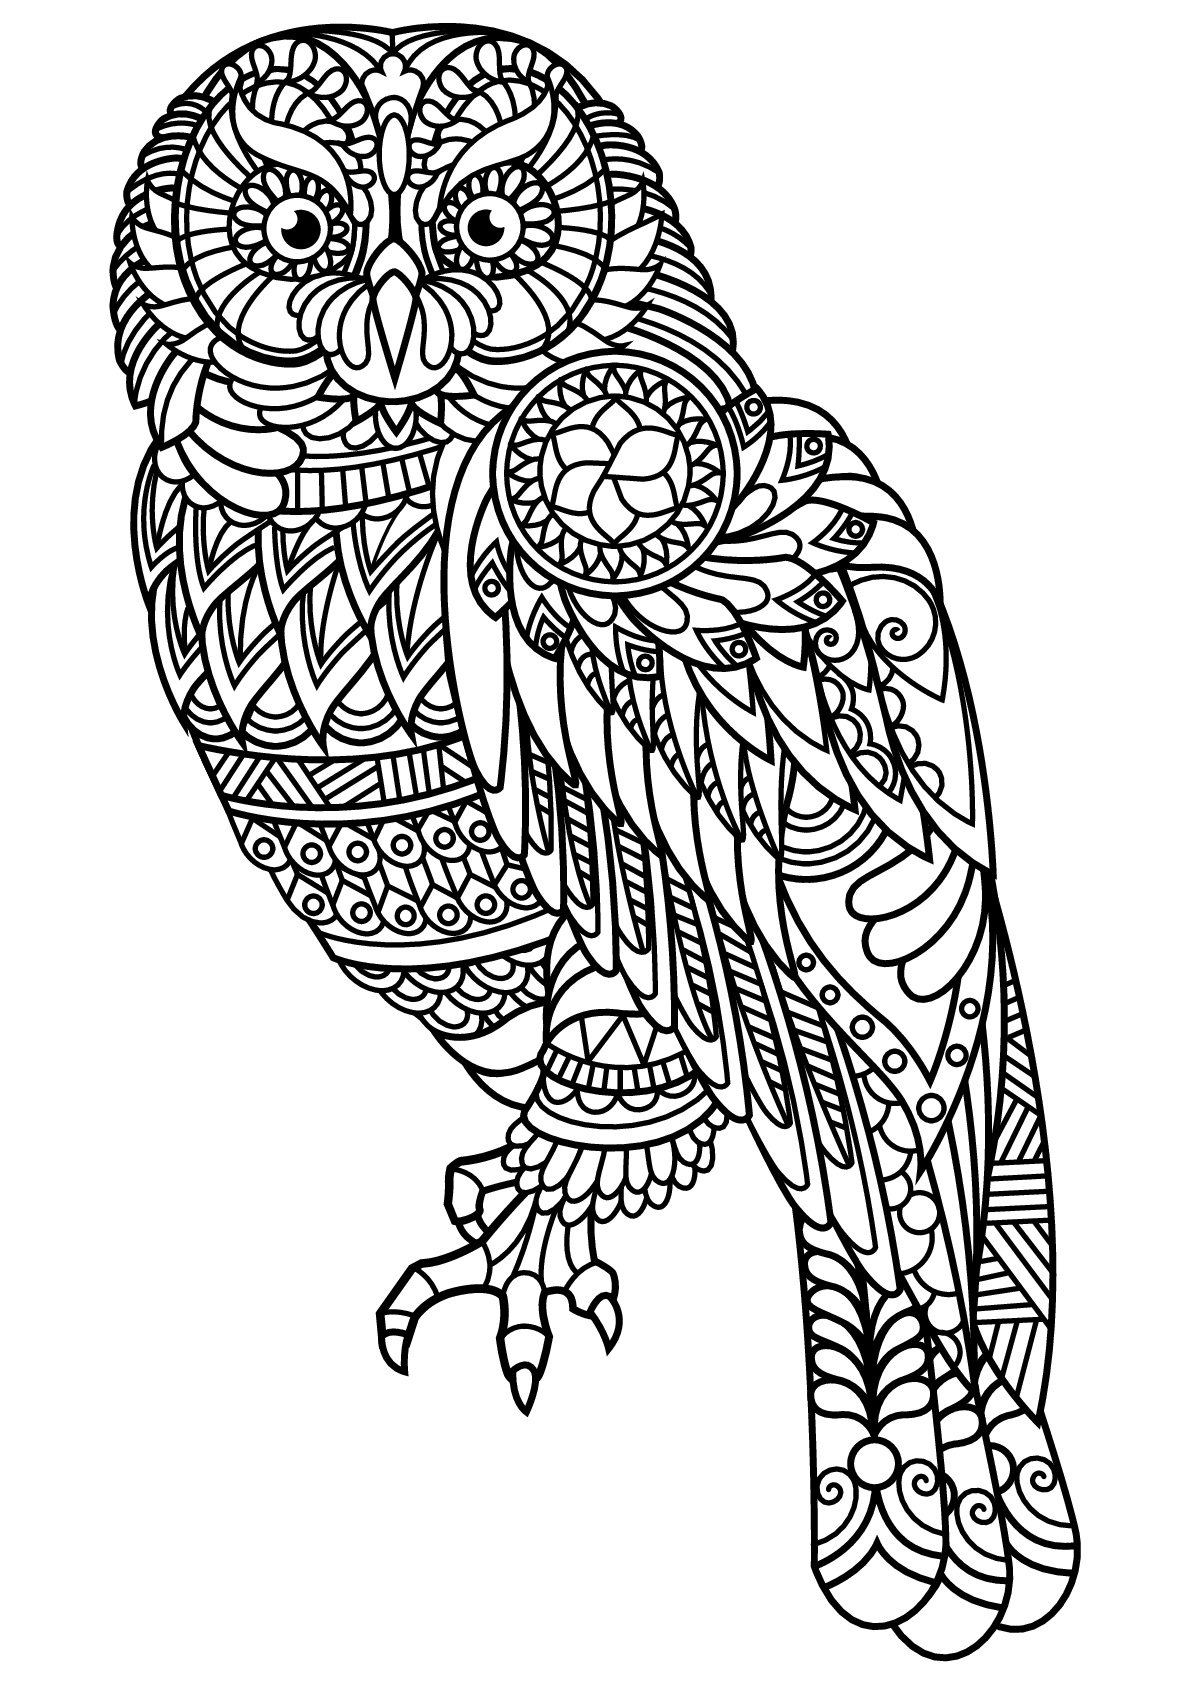 kids easy coloring book doodle art to print doodle art kids coloring pages coloring kids book easy